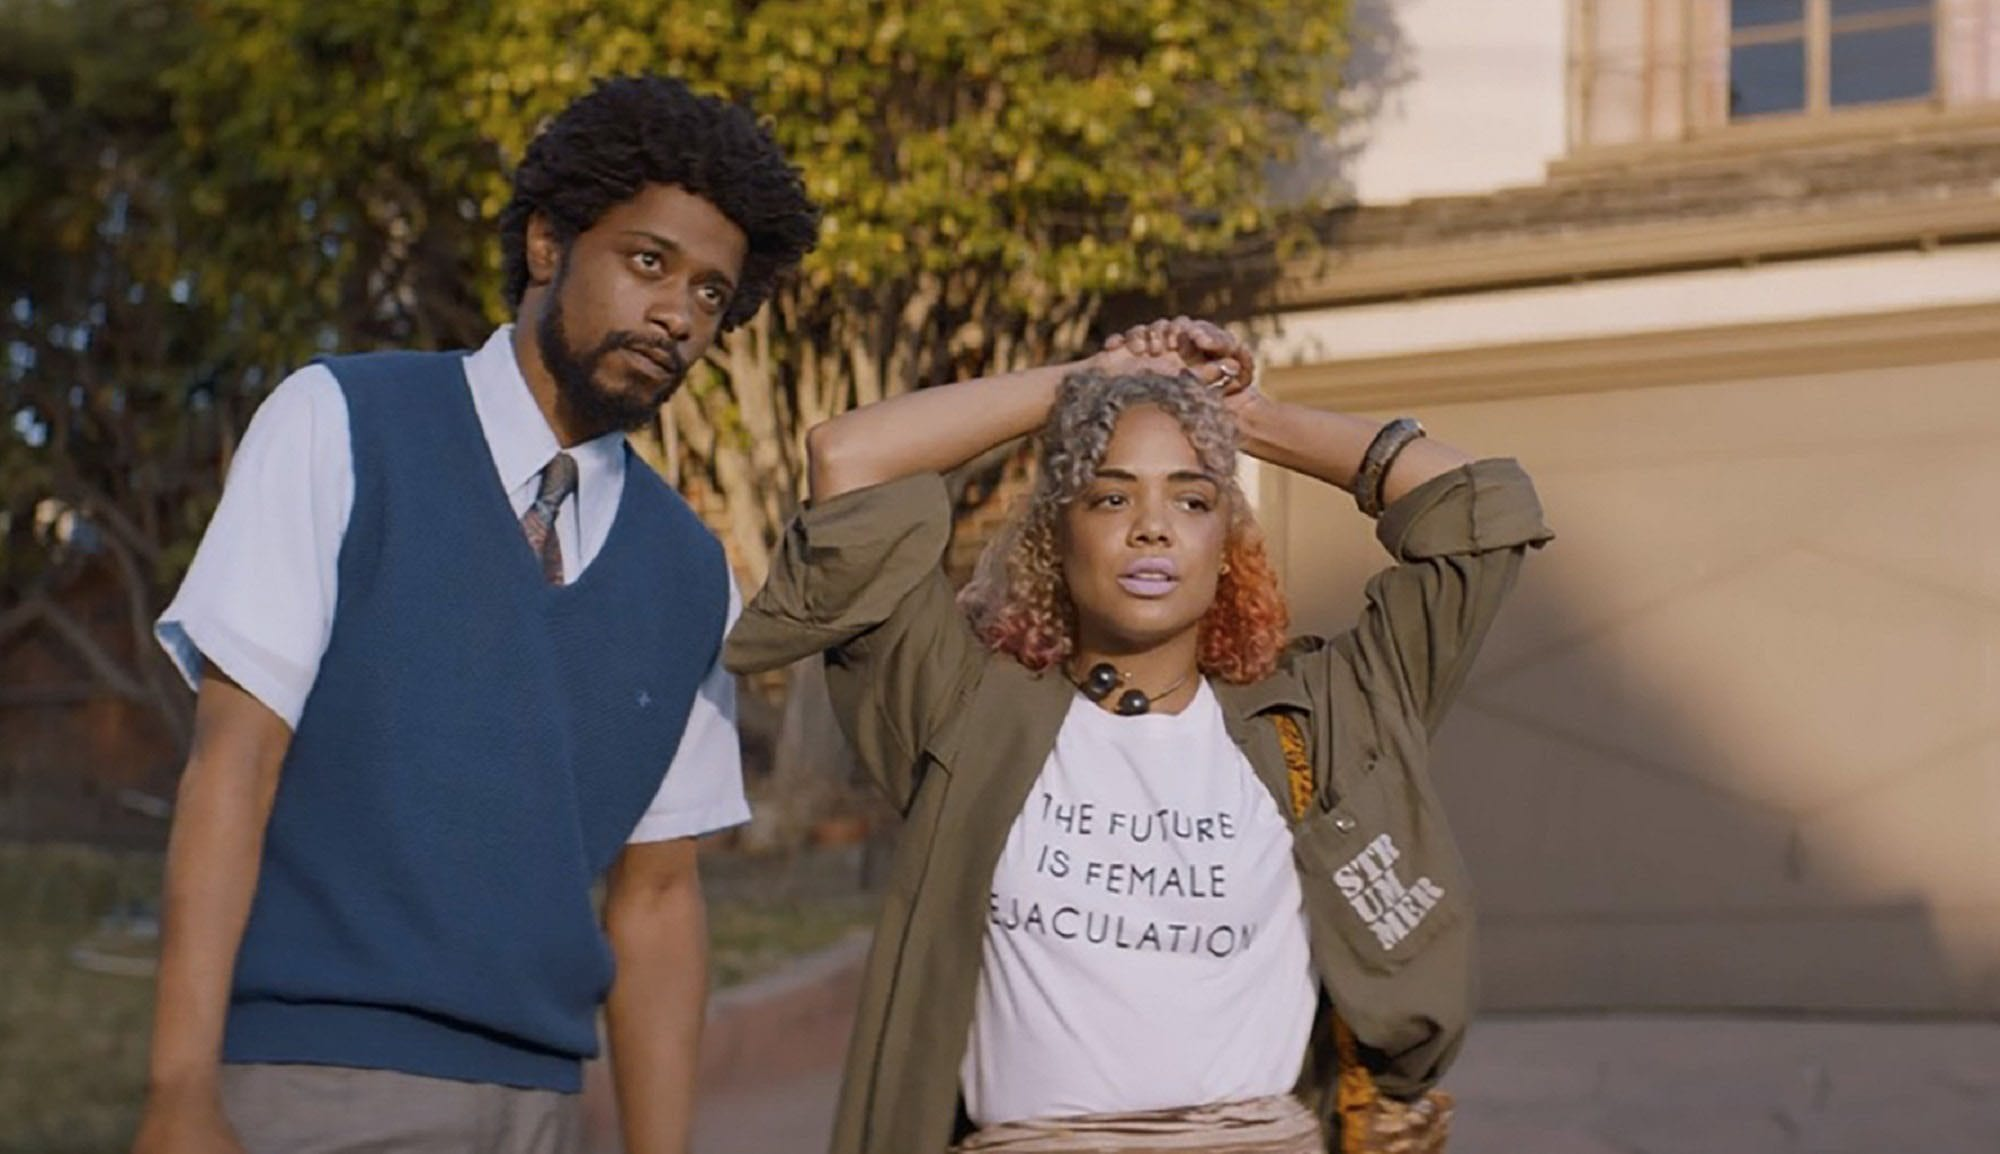 Boots Riley's 'Sorry to Bother You' scored a sweet deal at Sundance while critics have been raving about Charlize Theron's performance in Diablo Cody and Jason Reitman's 'Tully'.